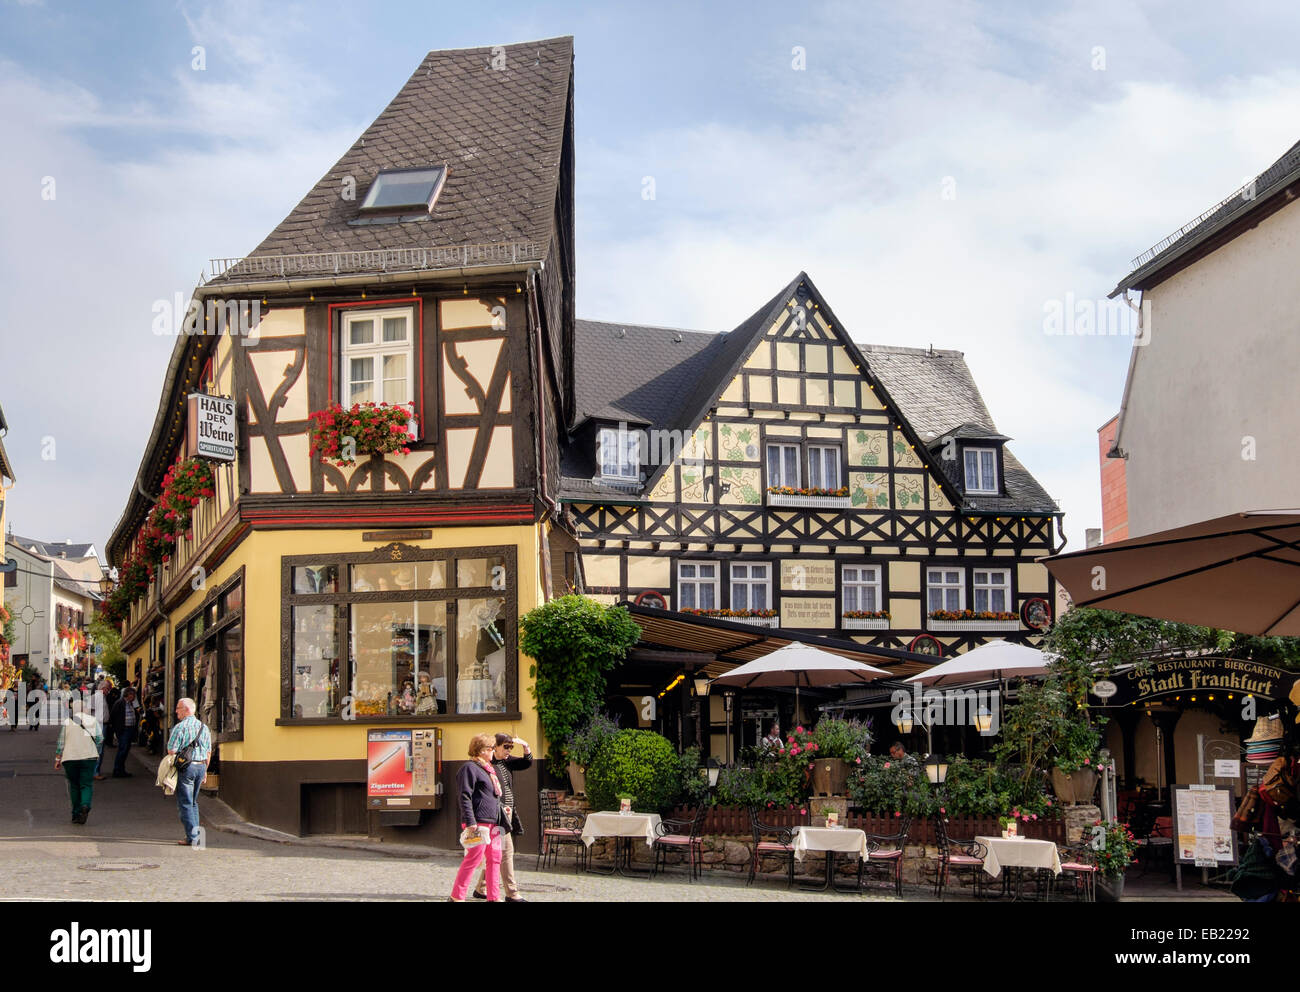 Deutsche Restaurants Mainz Altstadt Timbered 17th And 18th Century Buildings And Stadt